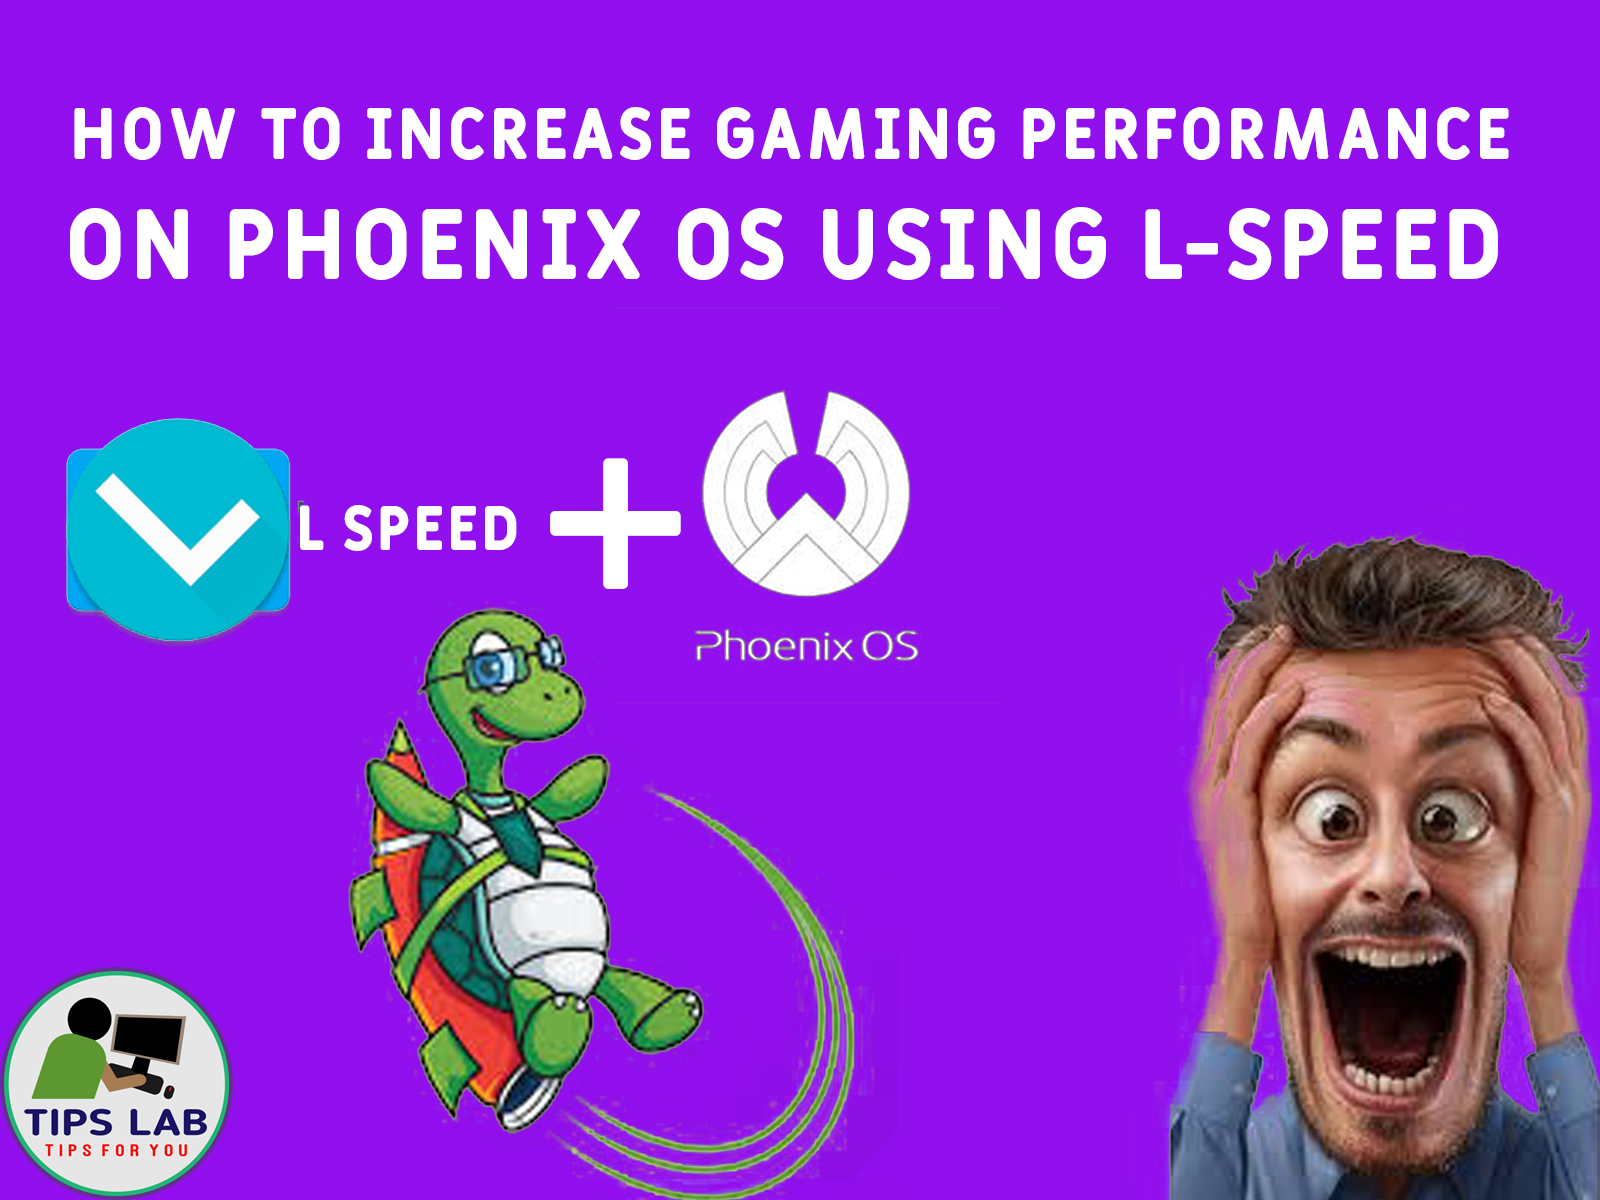 How To Increase Gaming Performance in Phoenix OS Using LSpeed